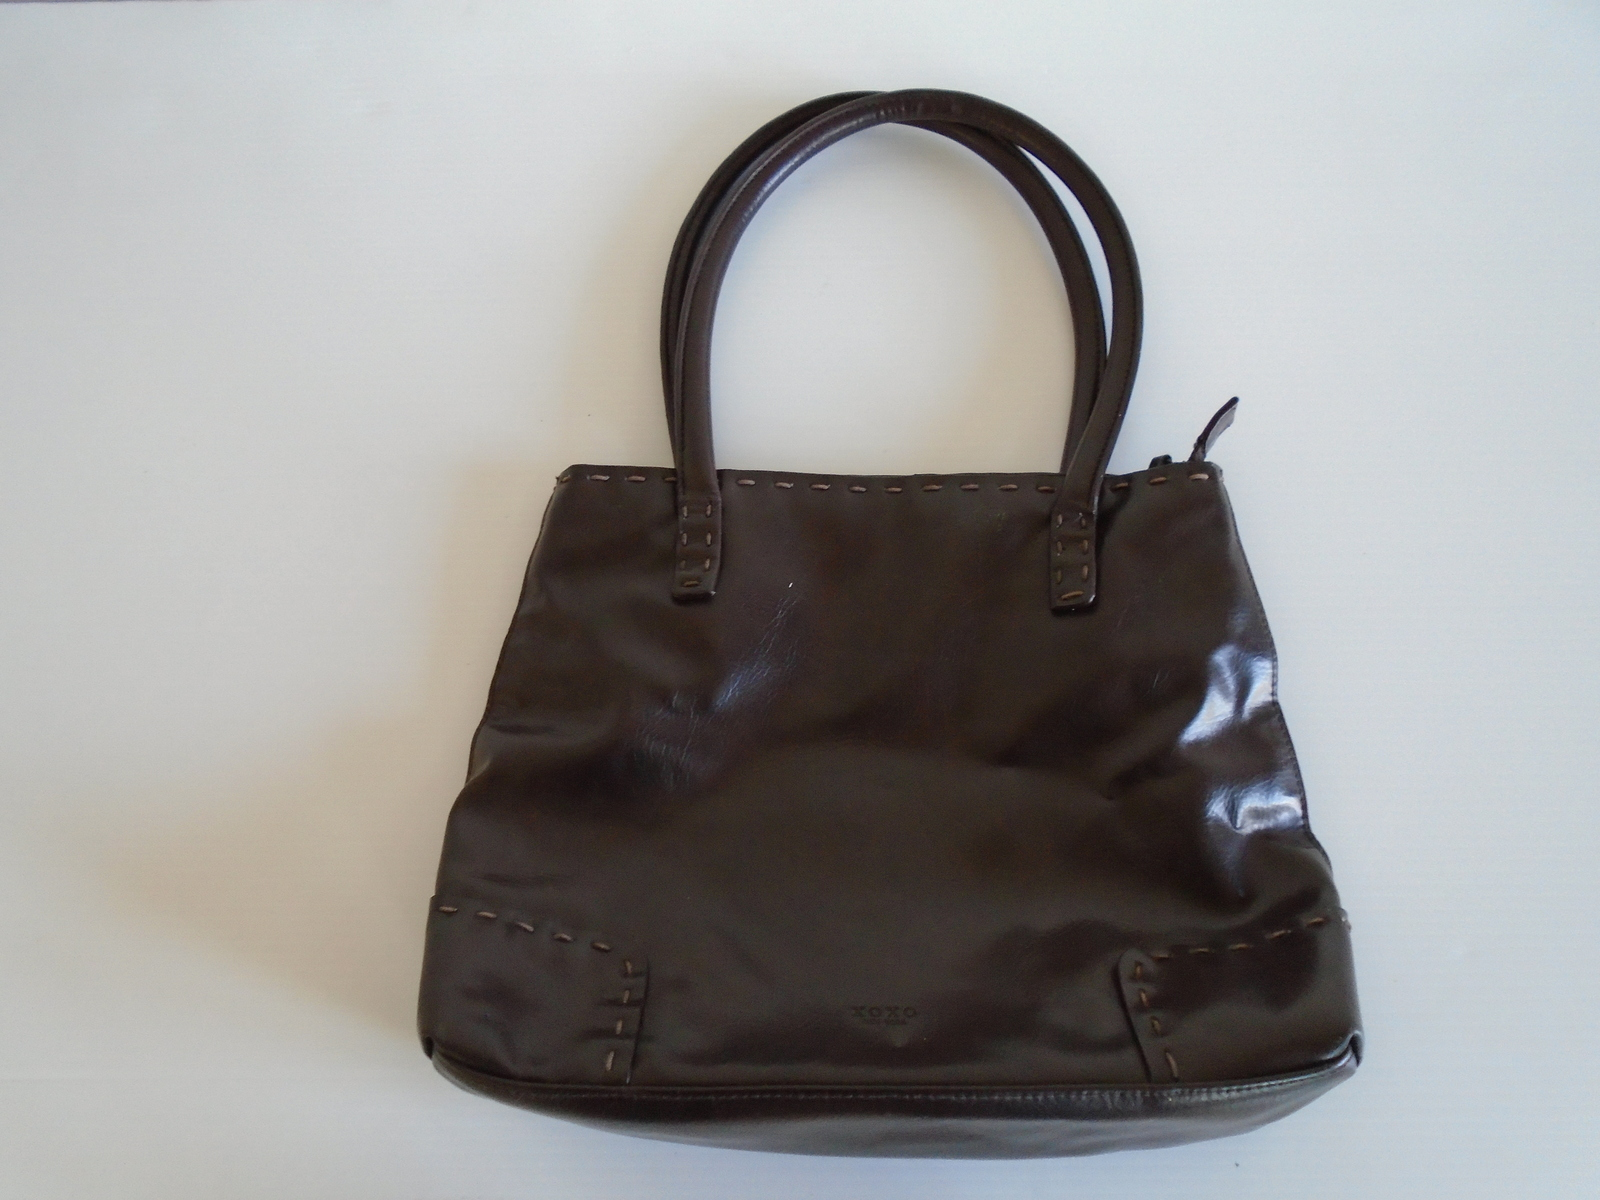 XOXO Faux Leather Dark Brown Medium Size Tote Bag. Ship